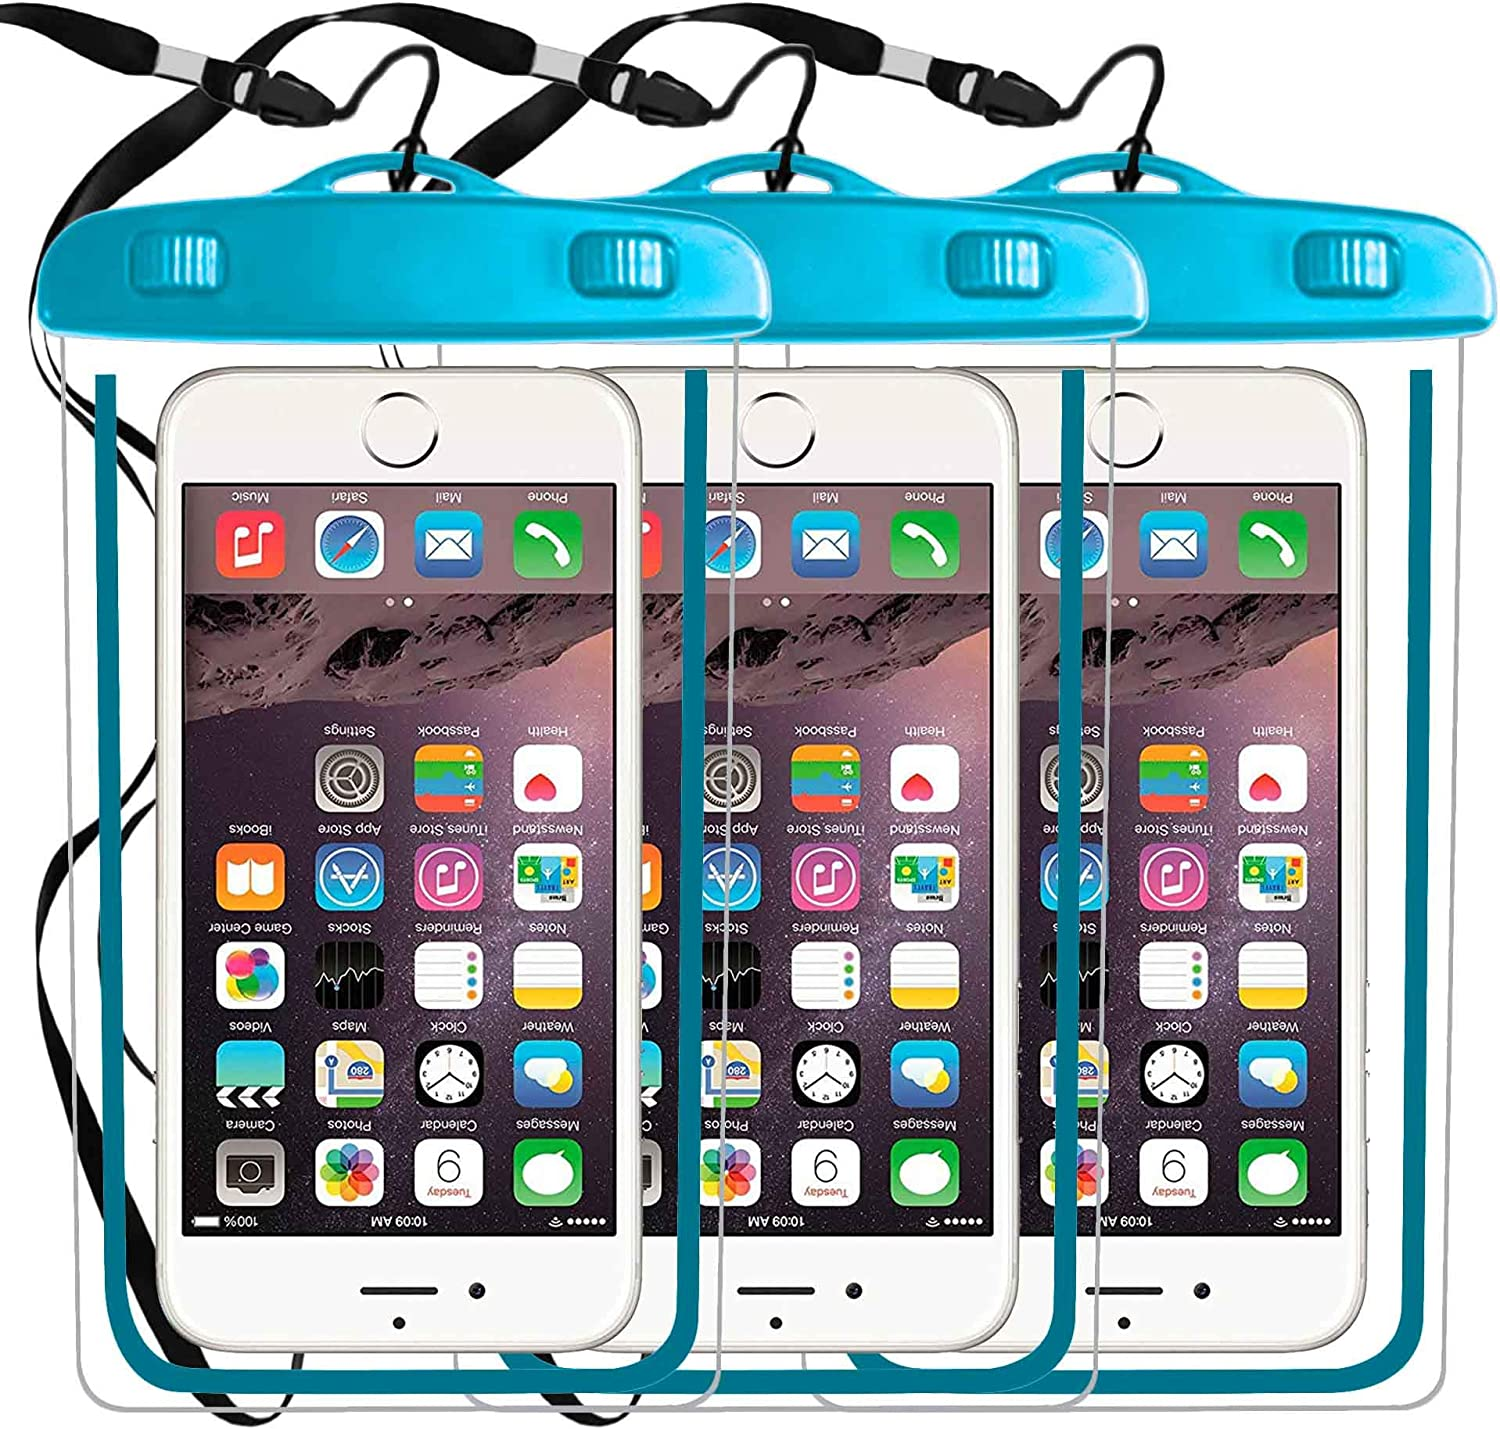 3 Pack Waterproof Phone Pouch,Cellphone Dry Case Bag Compatible with iPhone 11 PRO MAX Xs,XR,XS MAX,X 8,7,6s Plus,SE,Galaxy S9,S8+,s7 Edge LG,Diagonal to 6.3